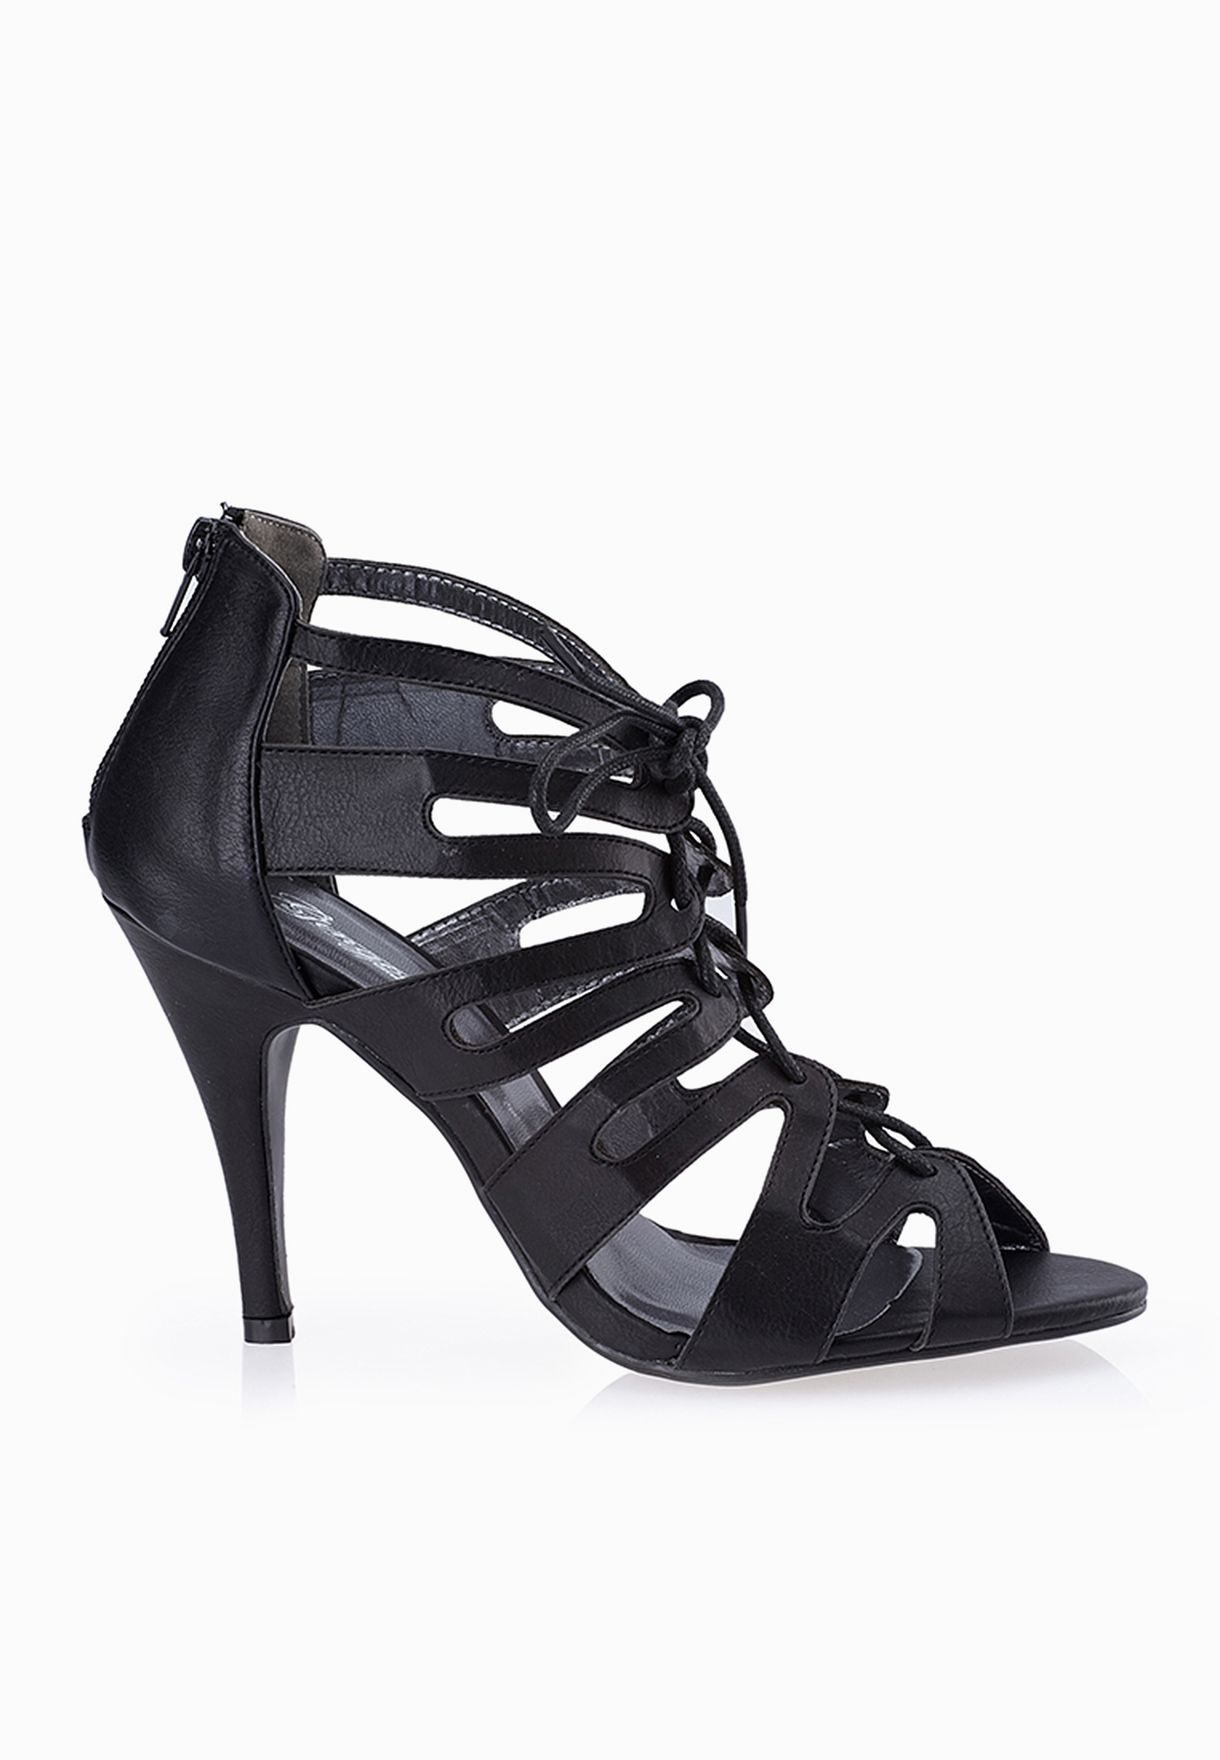 31a0cc39b37 Shop Ginger black Cage Lace Up Sandals for Women in UAE - GI121SH90RGF